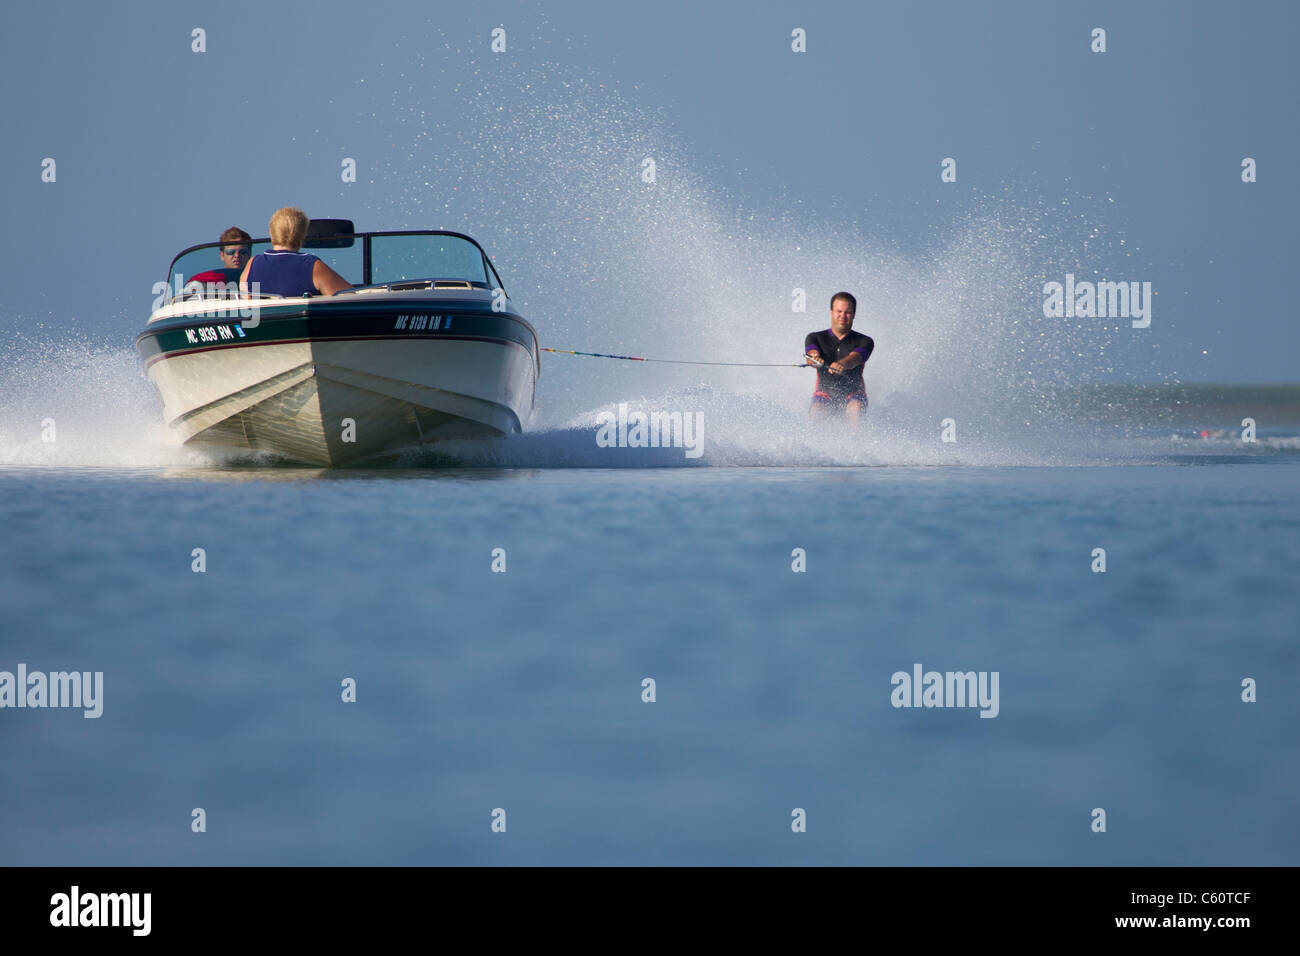 An approaching boat pulling a barefoot waterskier. - Stock Image